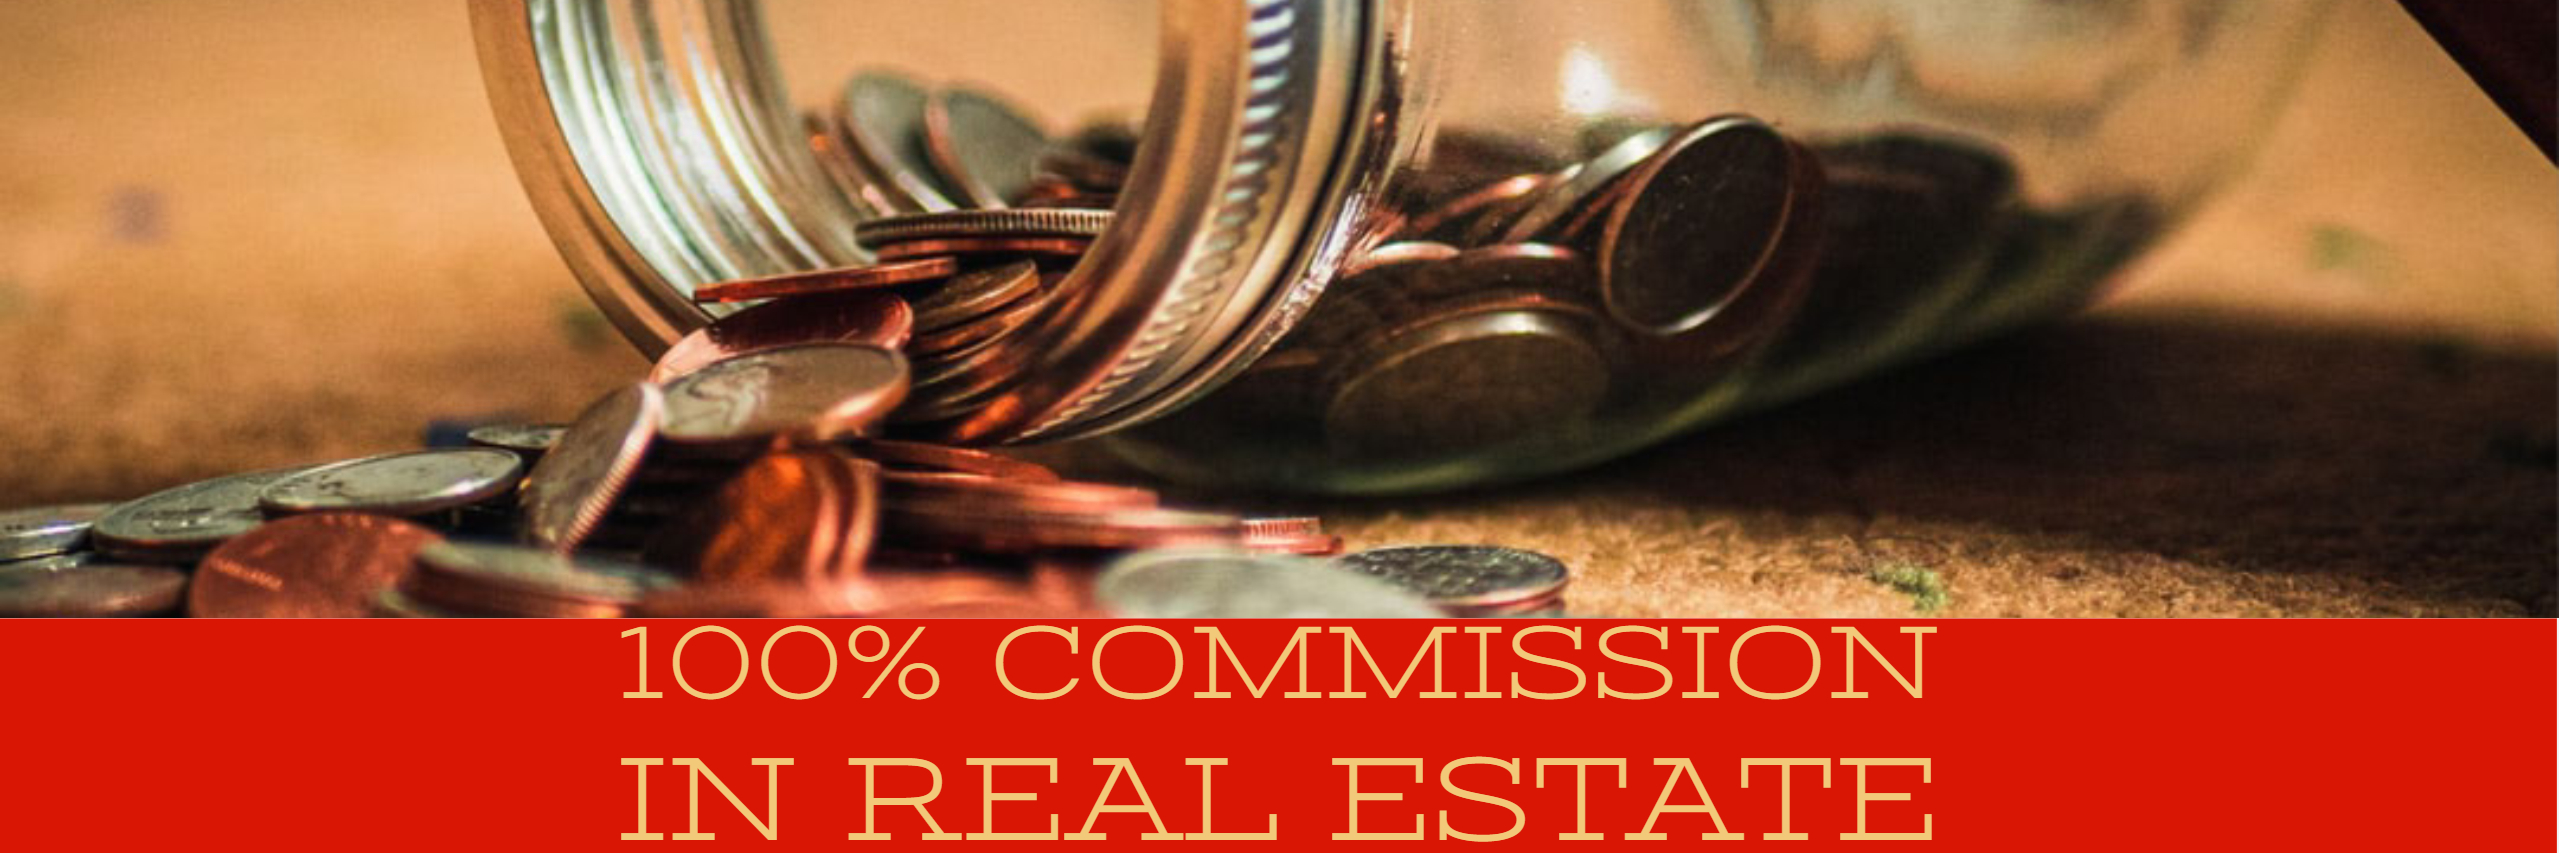 100% Commission In Real Estate